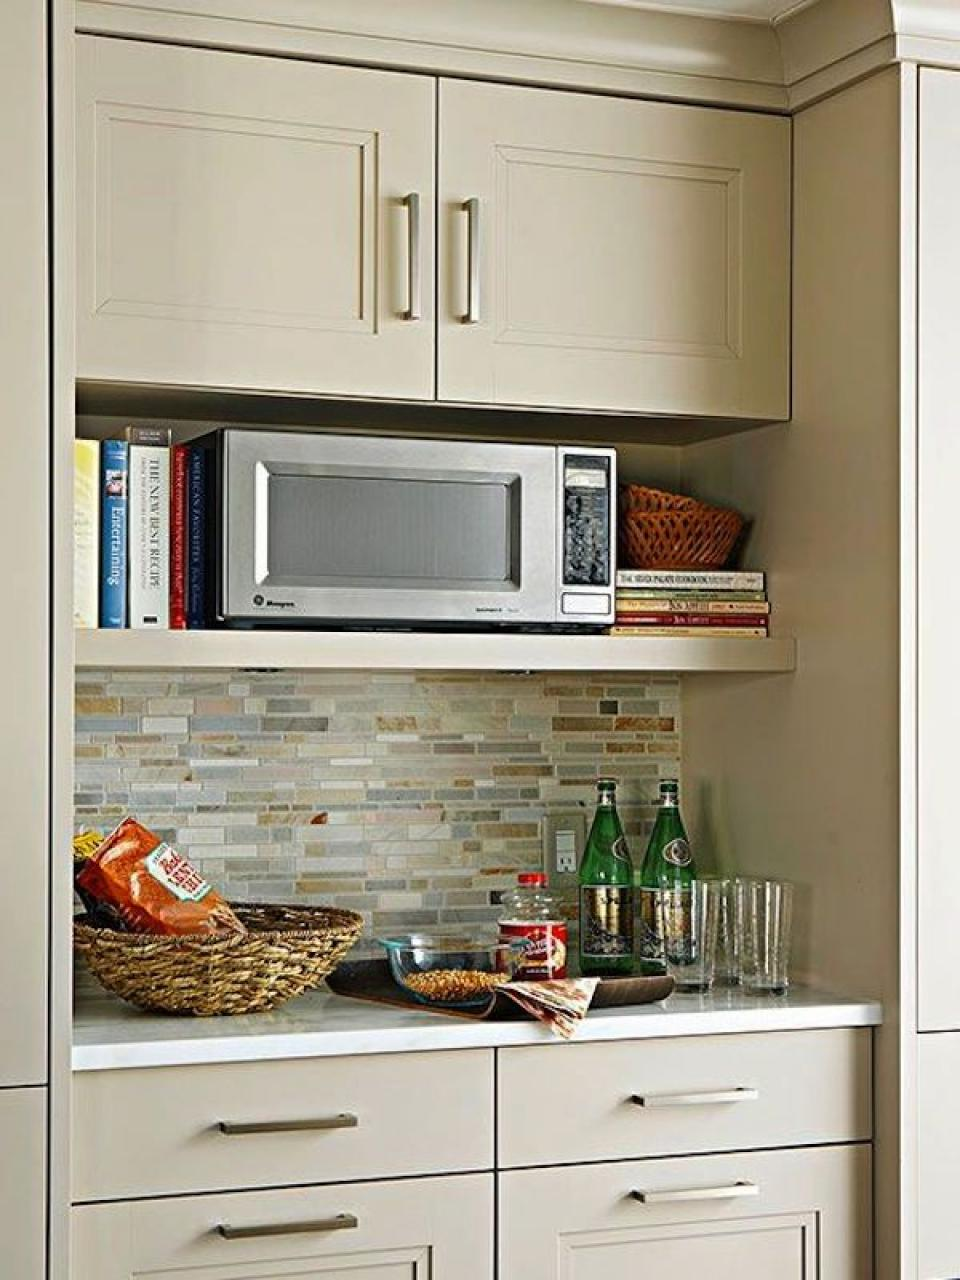 Best Small Apartment Appliances Gallery  Decorating Ideas